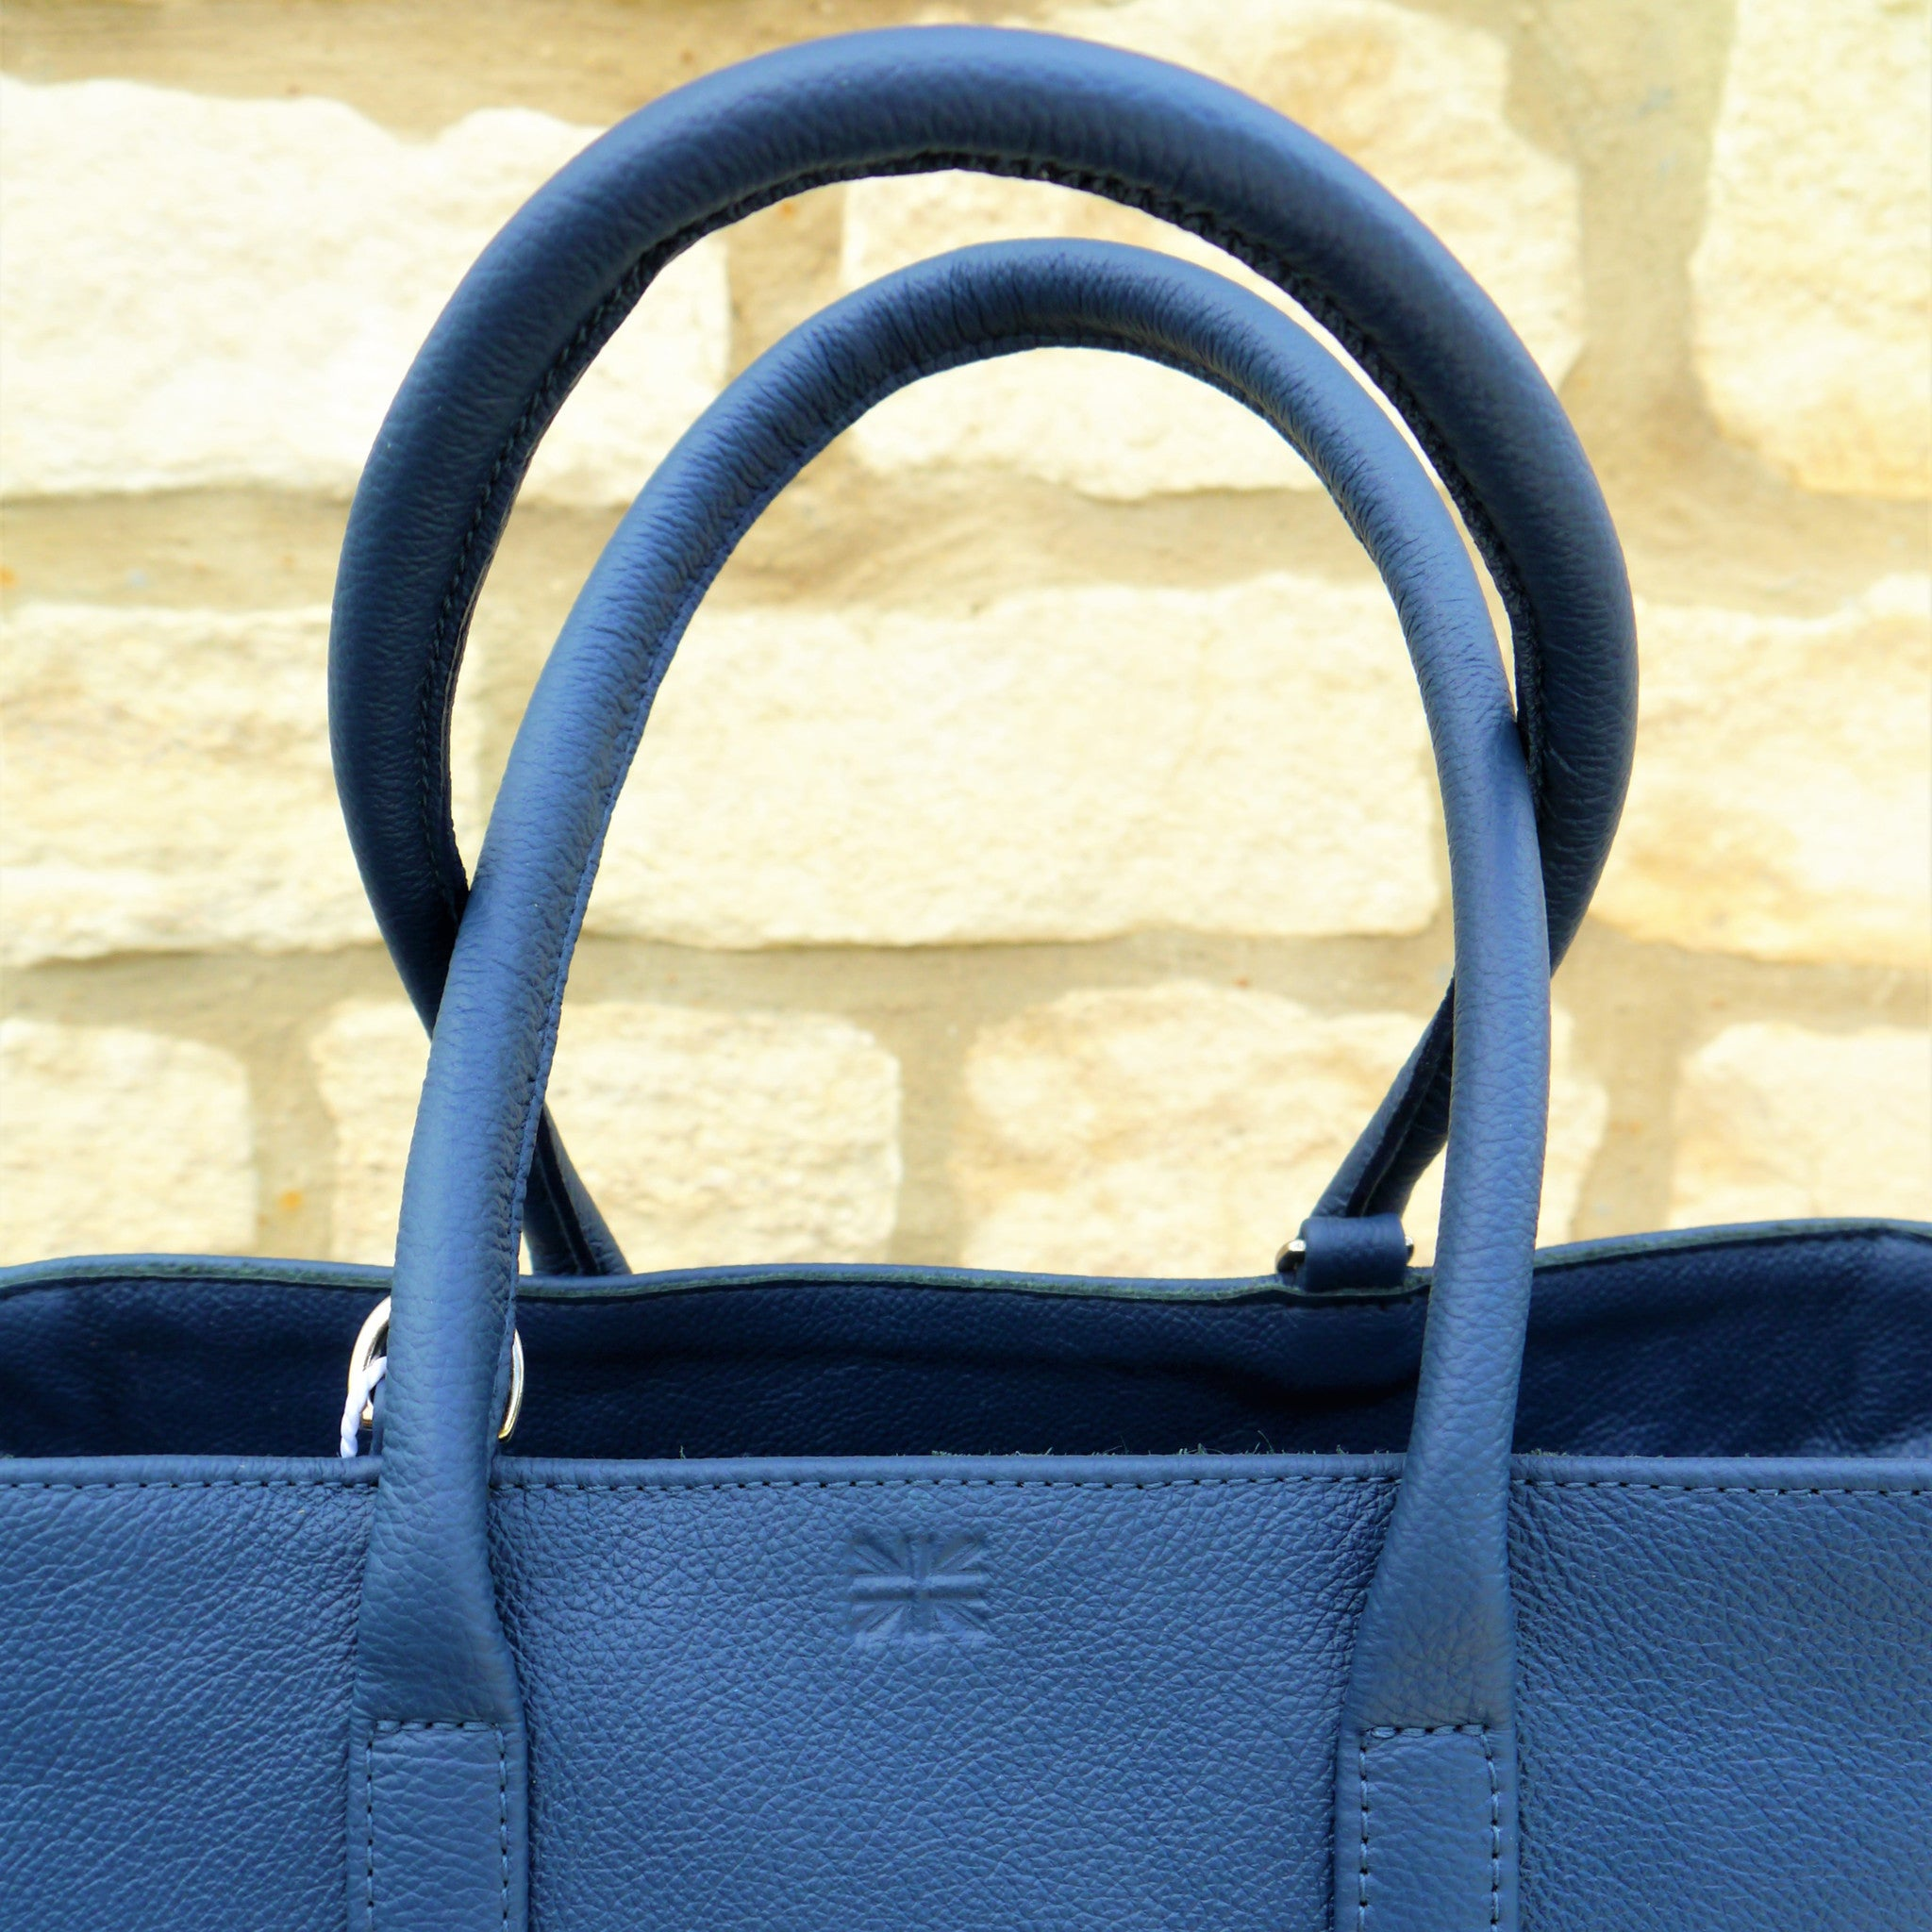 S/S 16 Sweet Pea Handbag in Navy